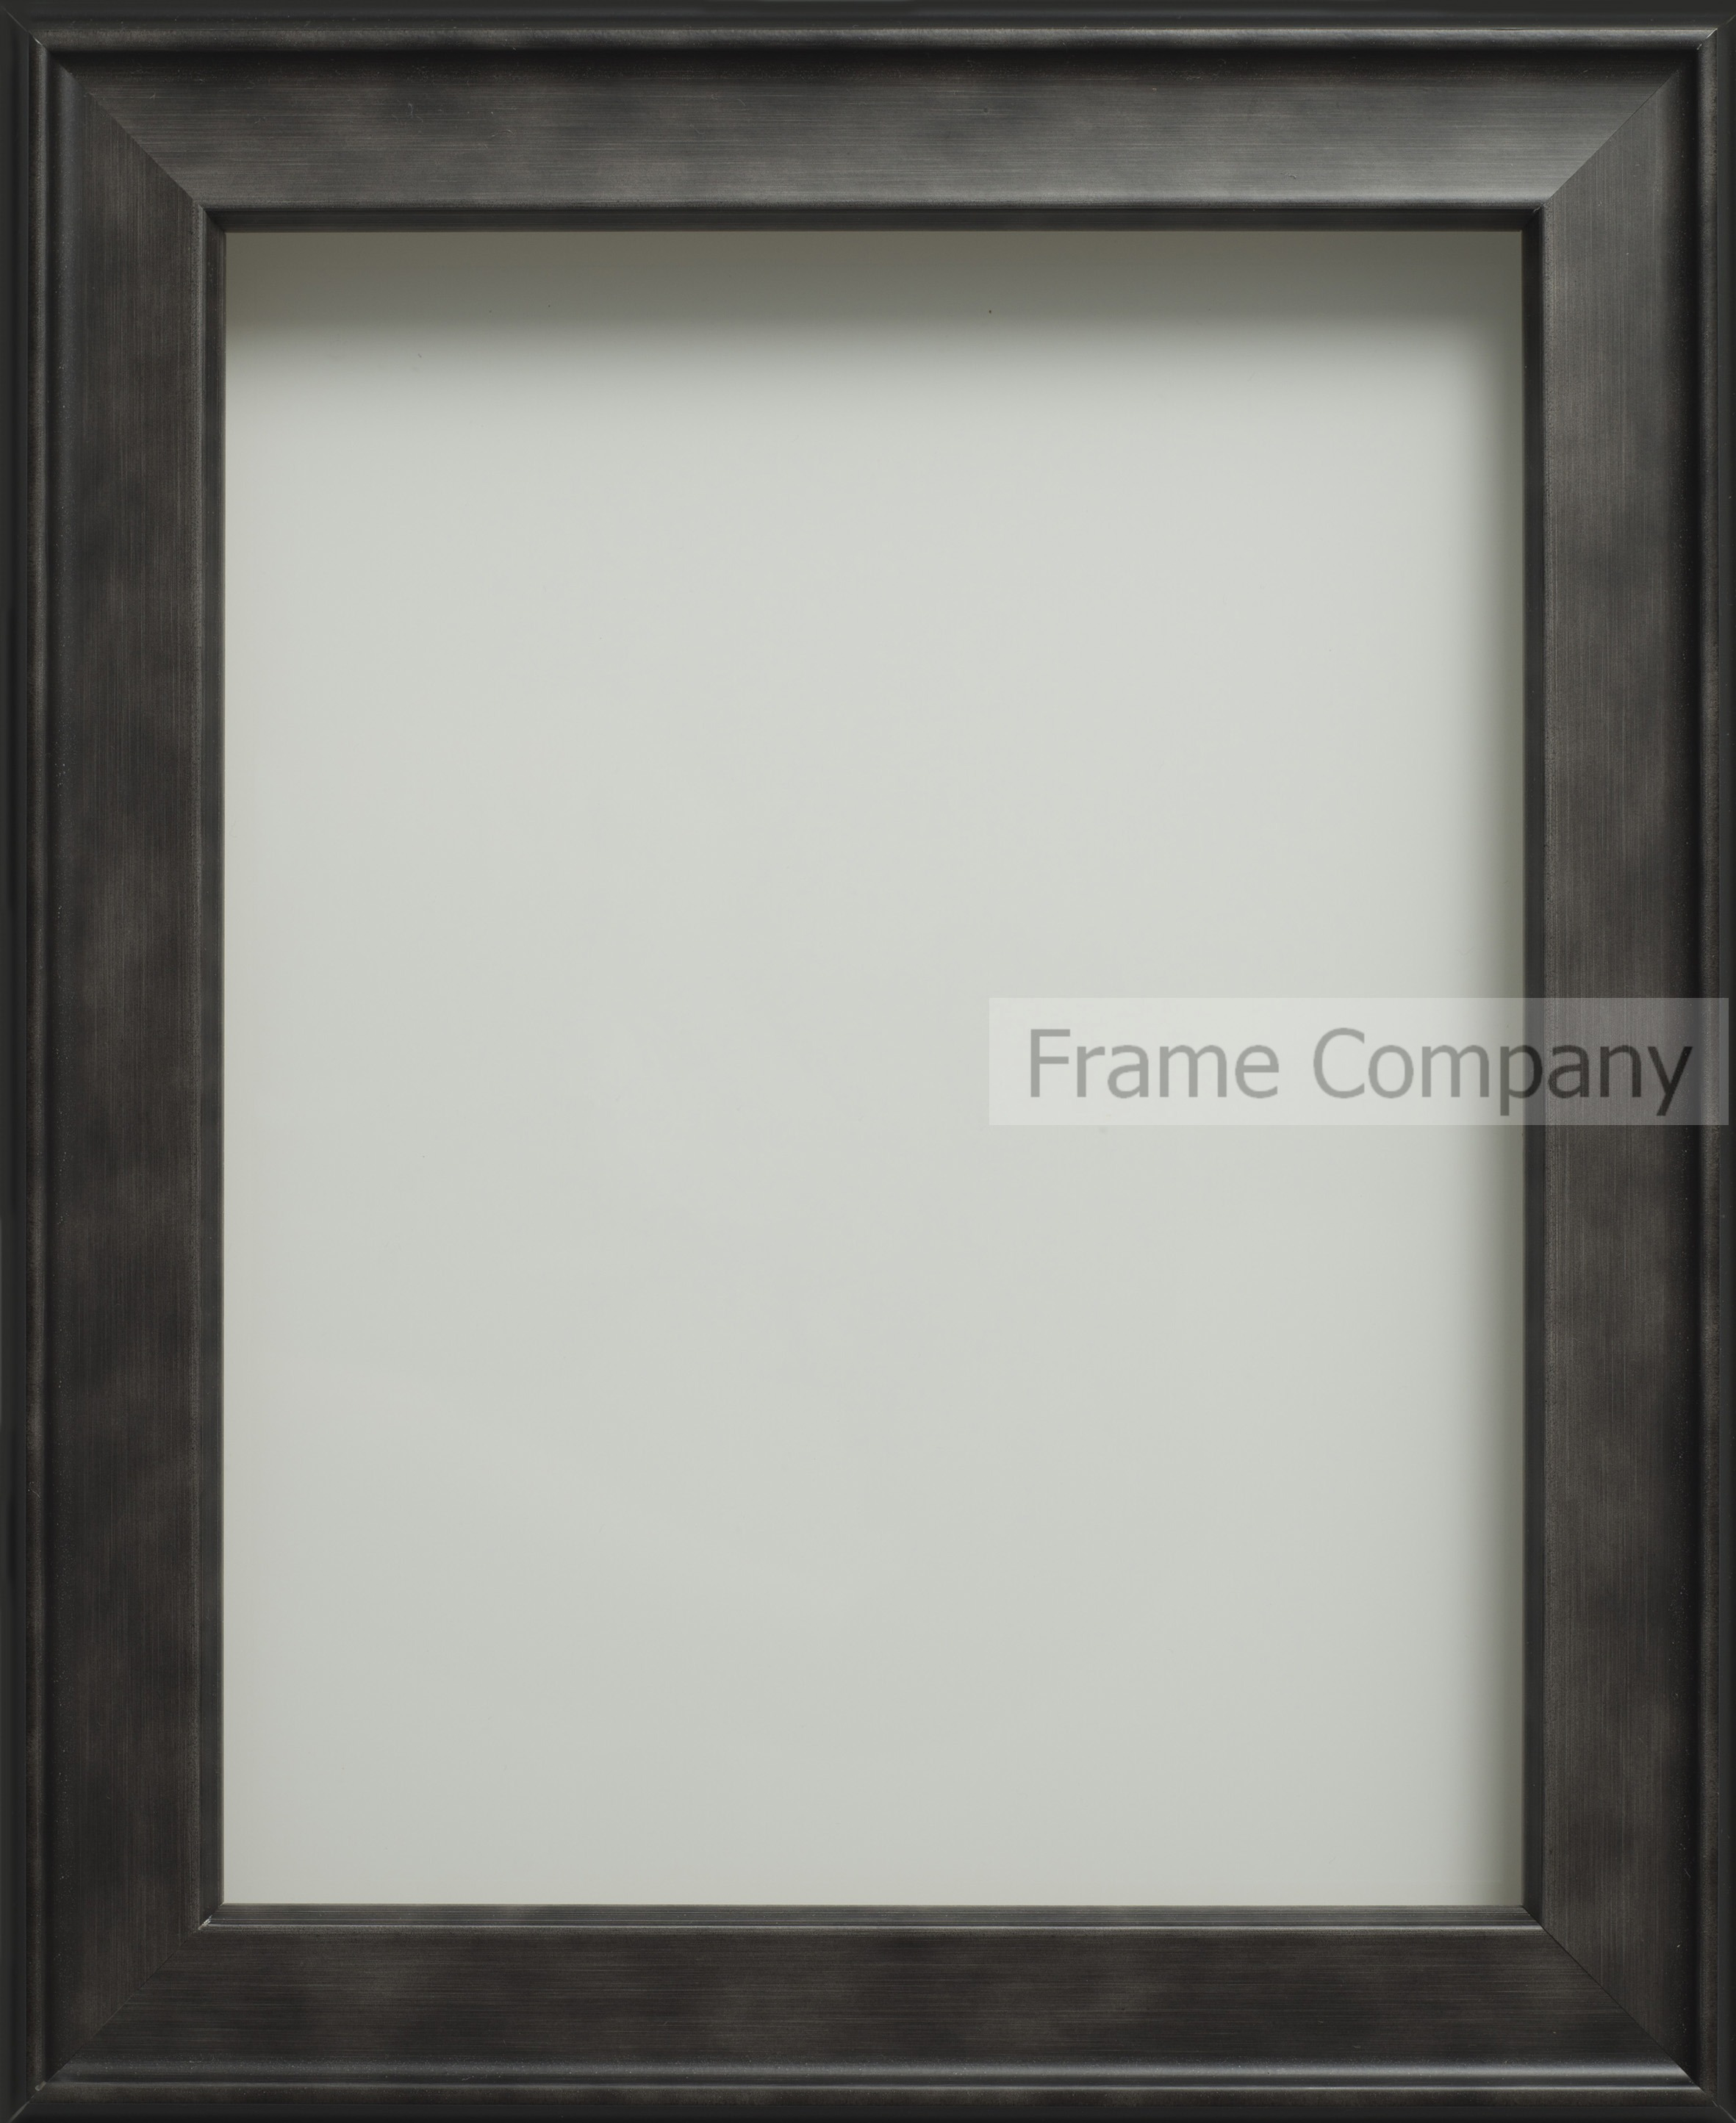 Frame Company Wilton Range Grey Cream Charcoal Wooden Picture Photo Frames